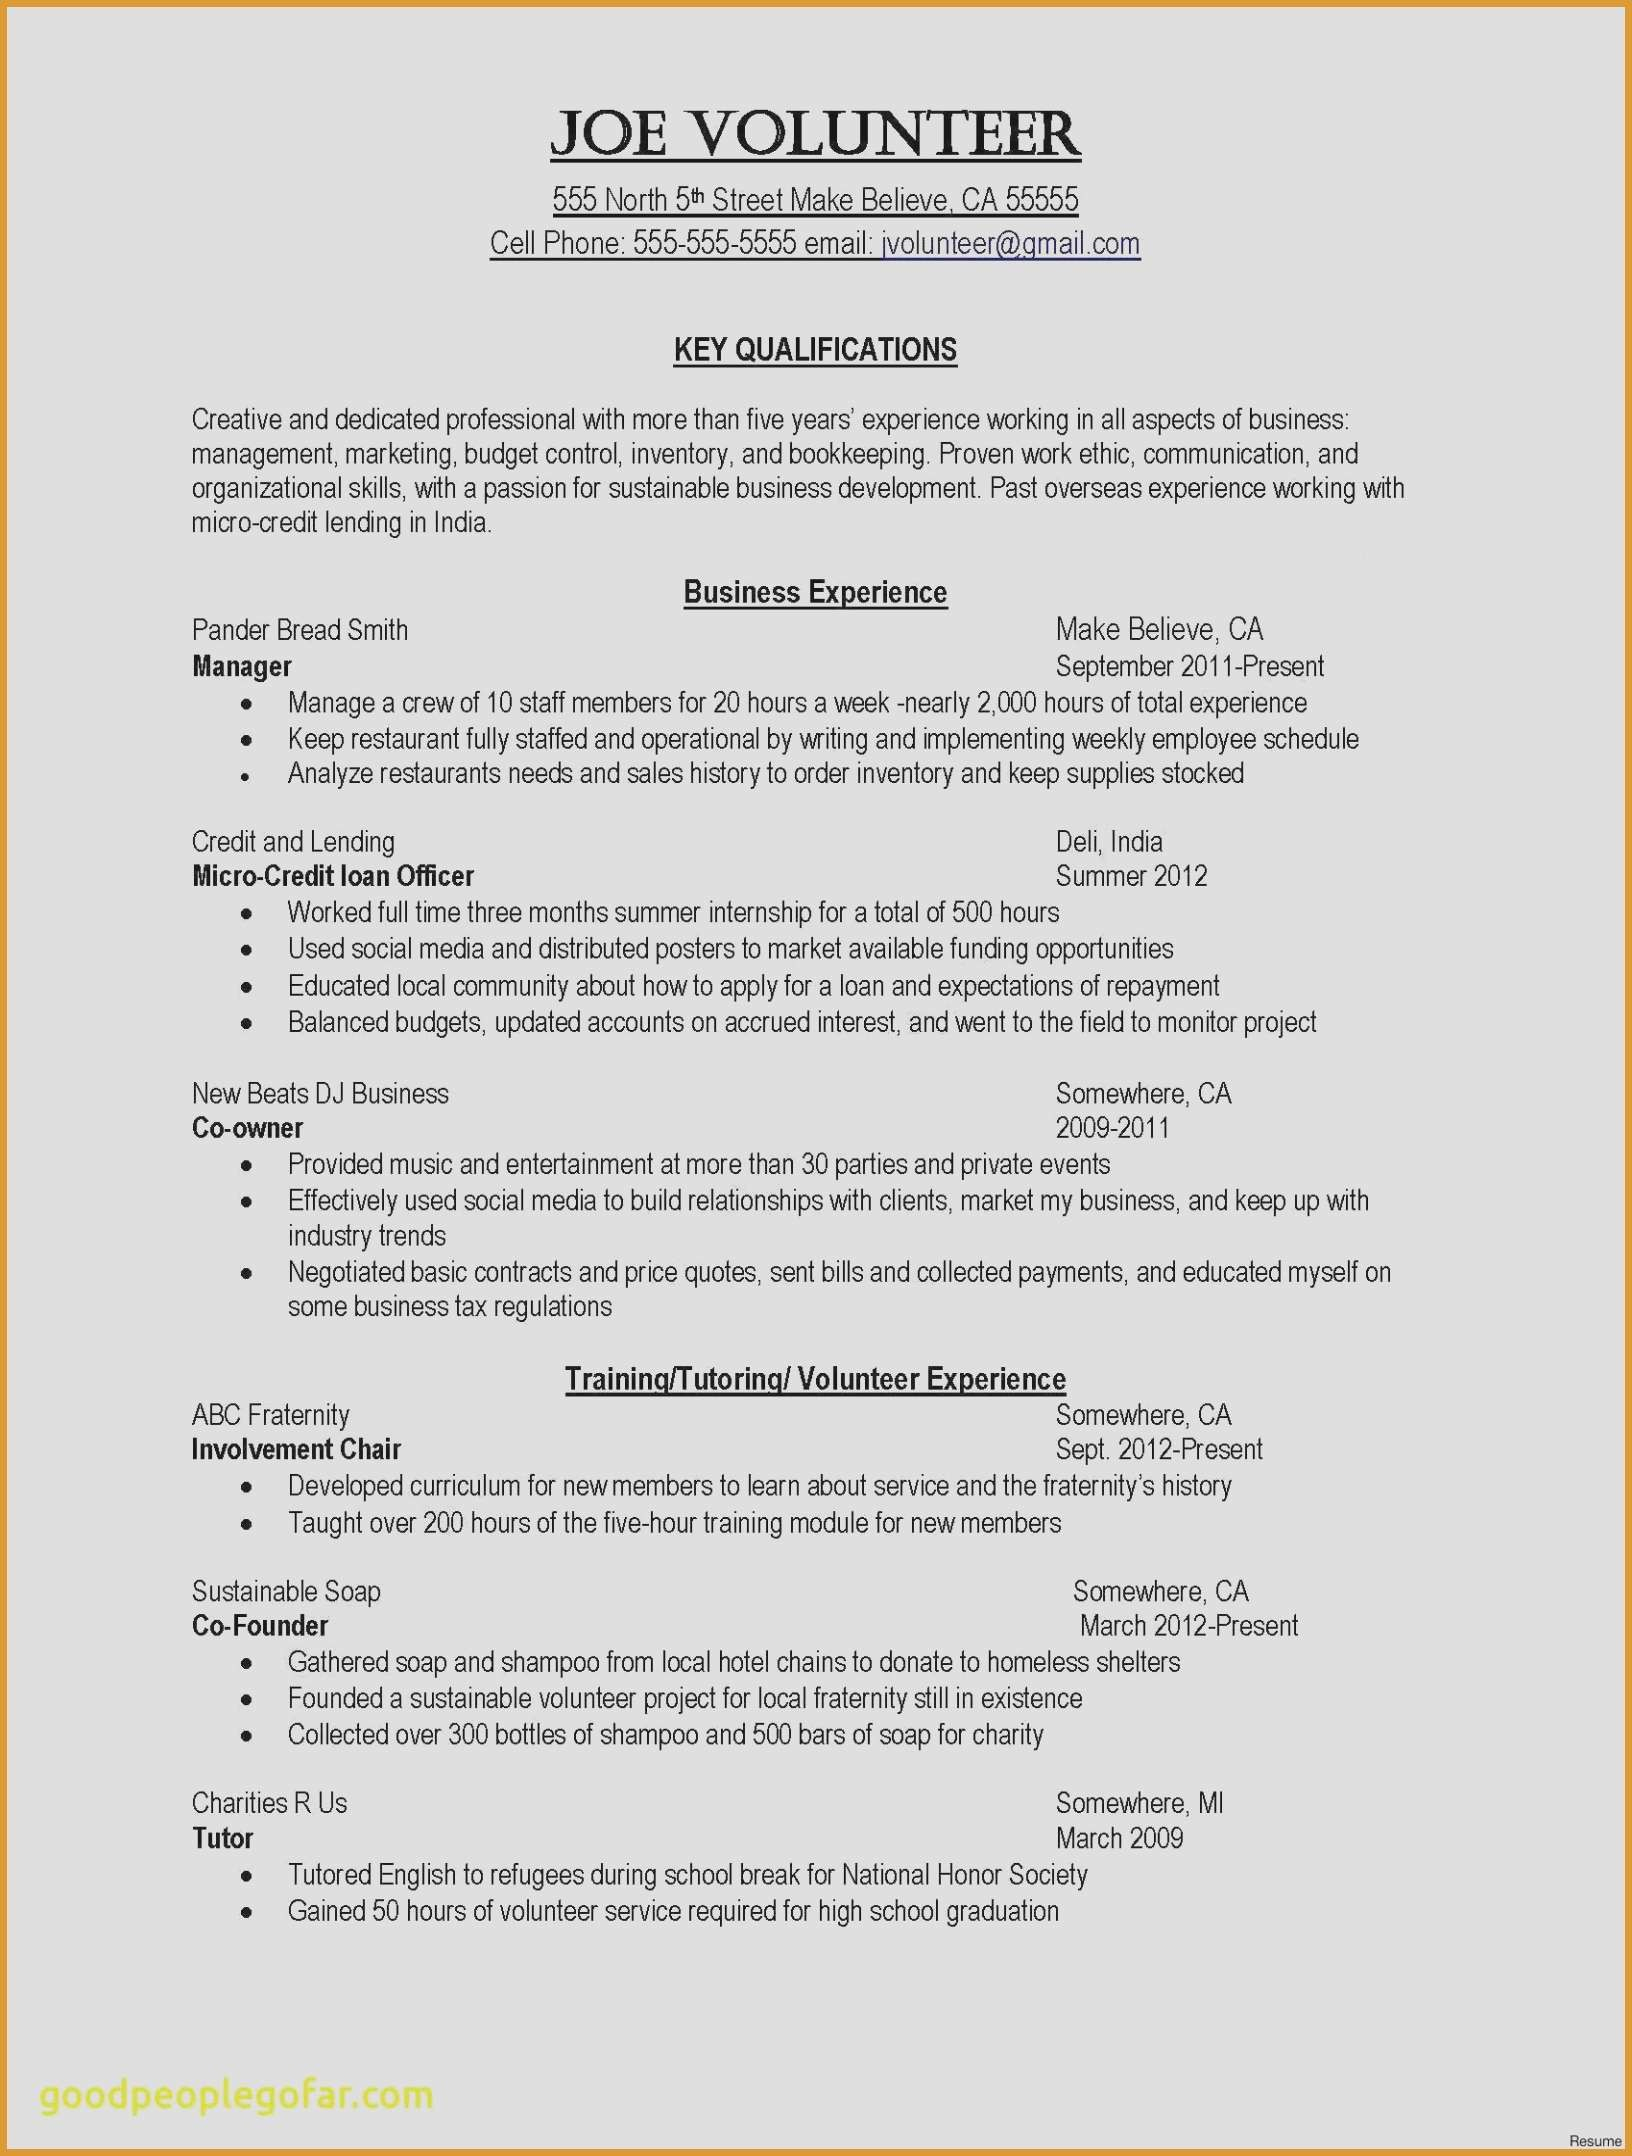 What Should My Resume Look Like - What Should My Resume Look Like Fresh Sample Federal Resume Radio